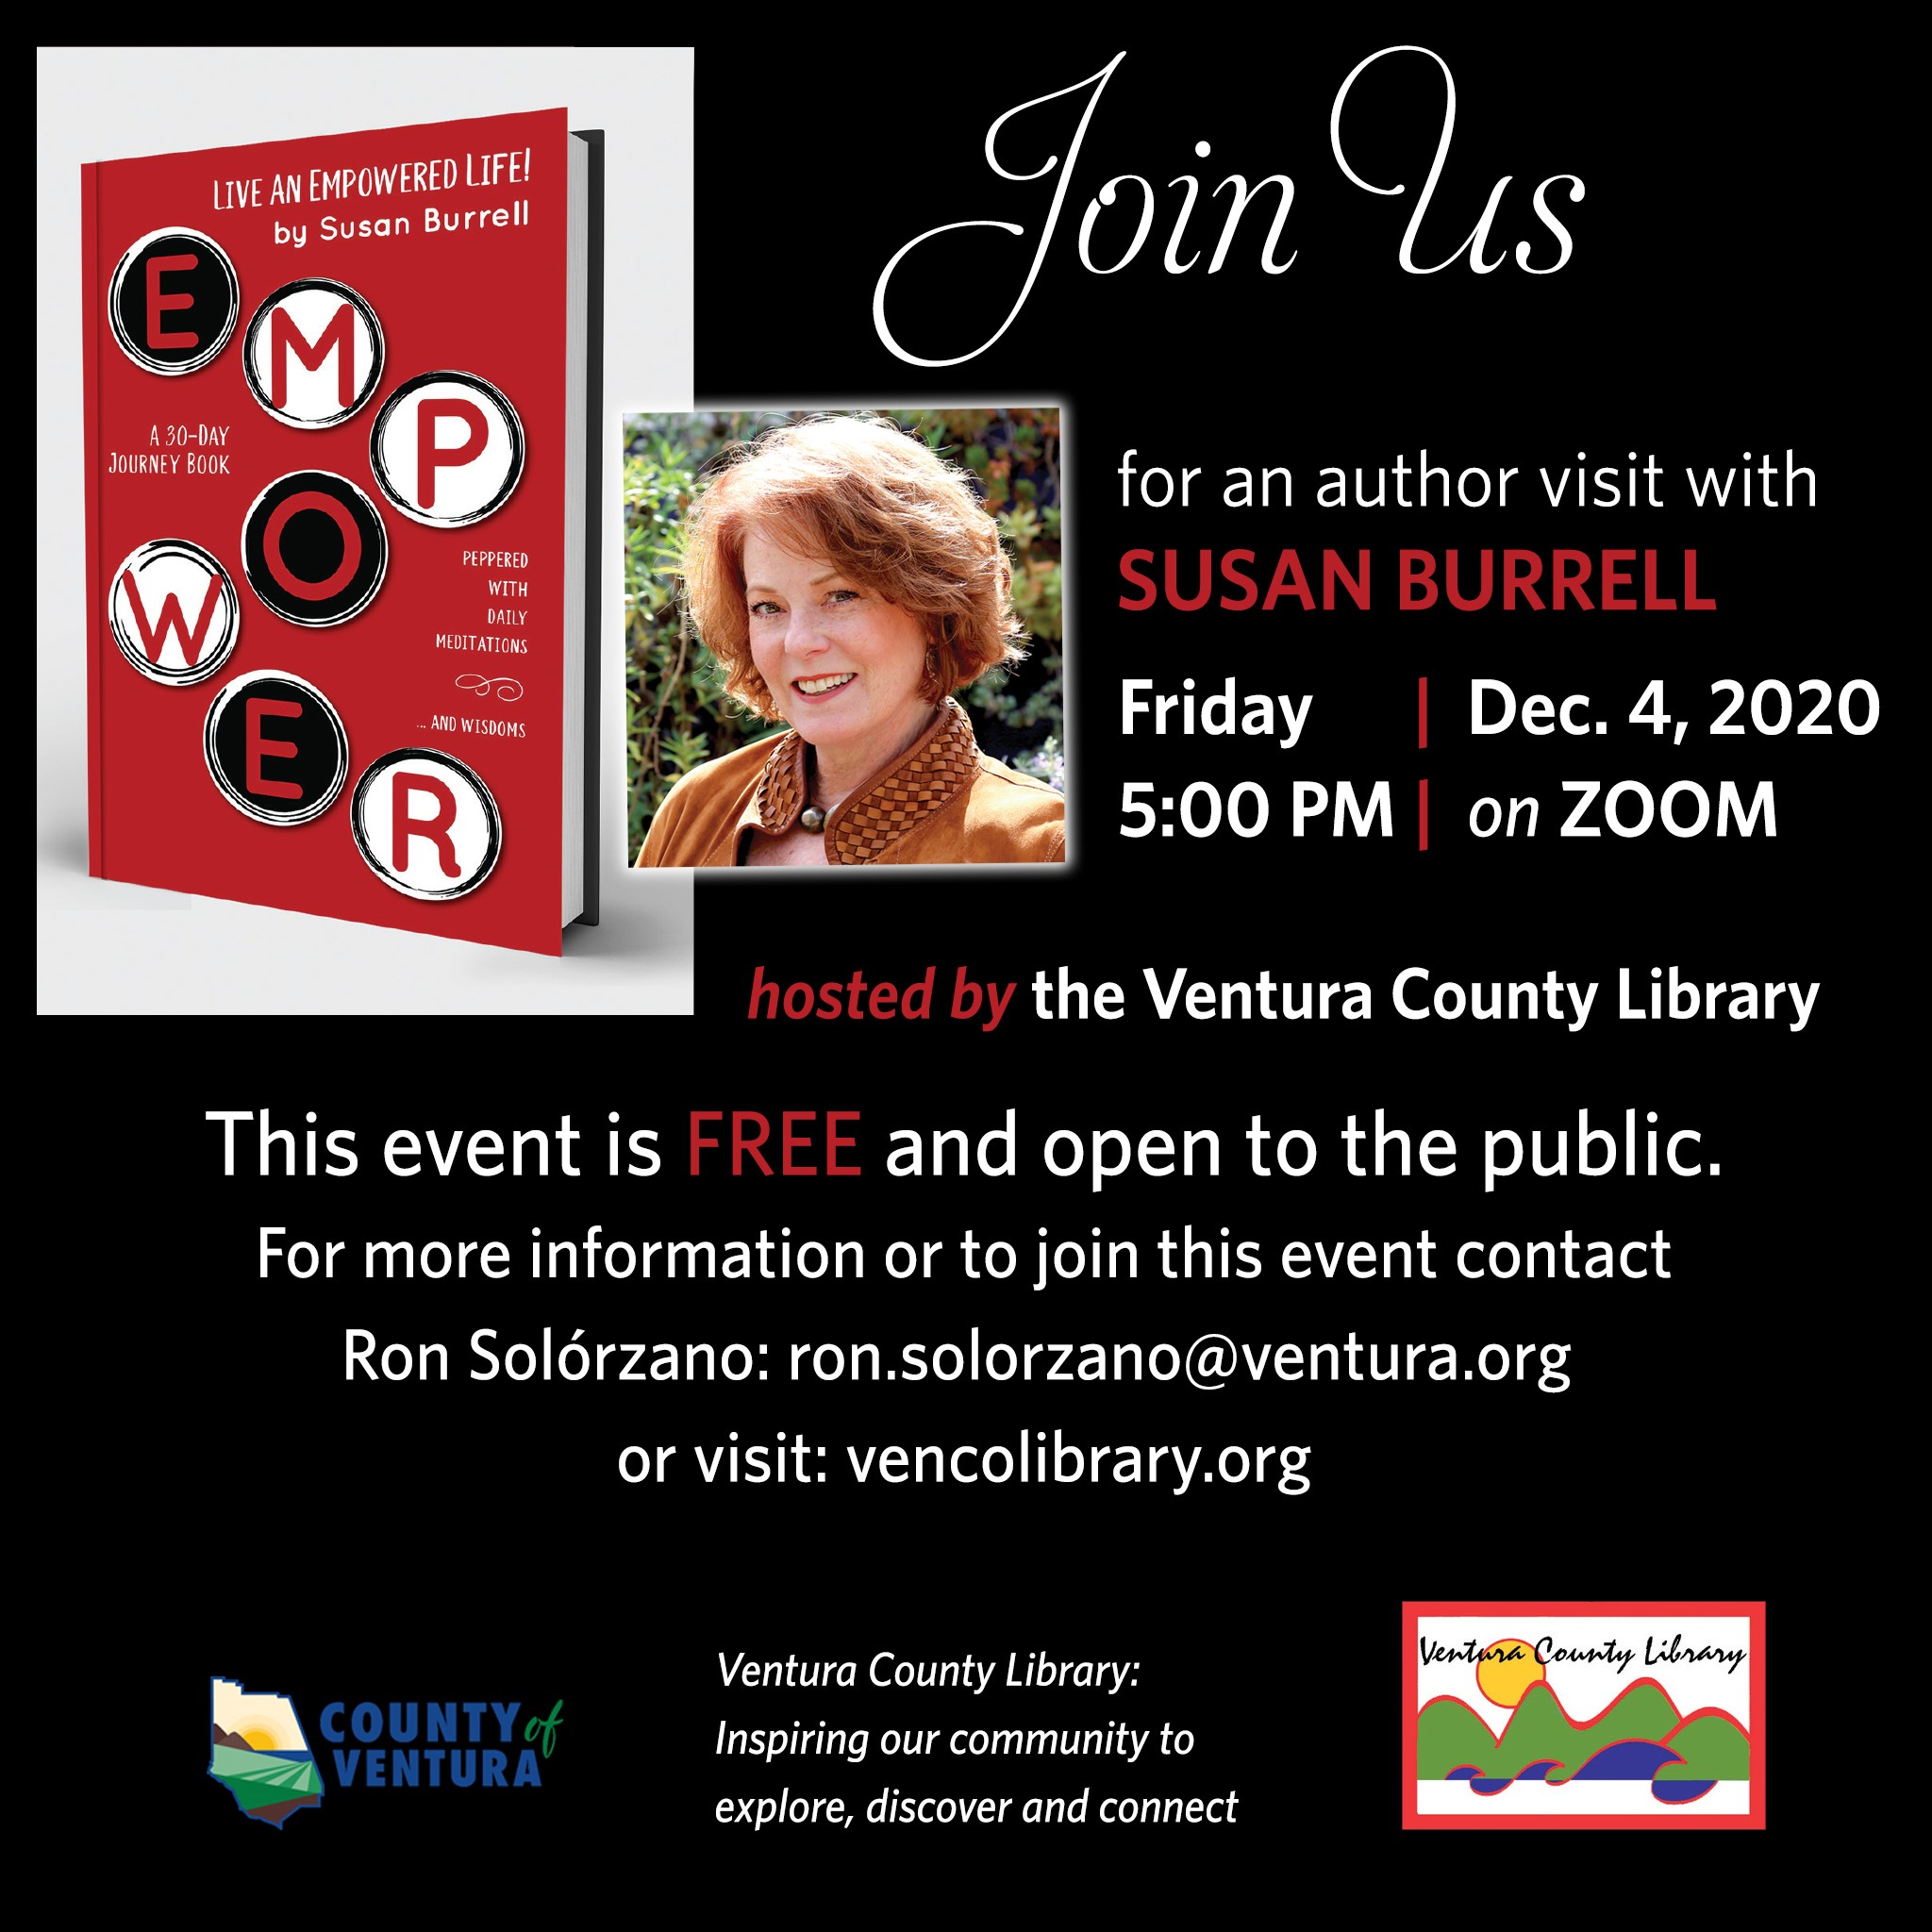 Joins us for an author visit with Susan Burrell - photo of Ms. Burrell along with her book's cover art